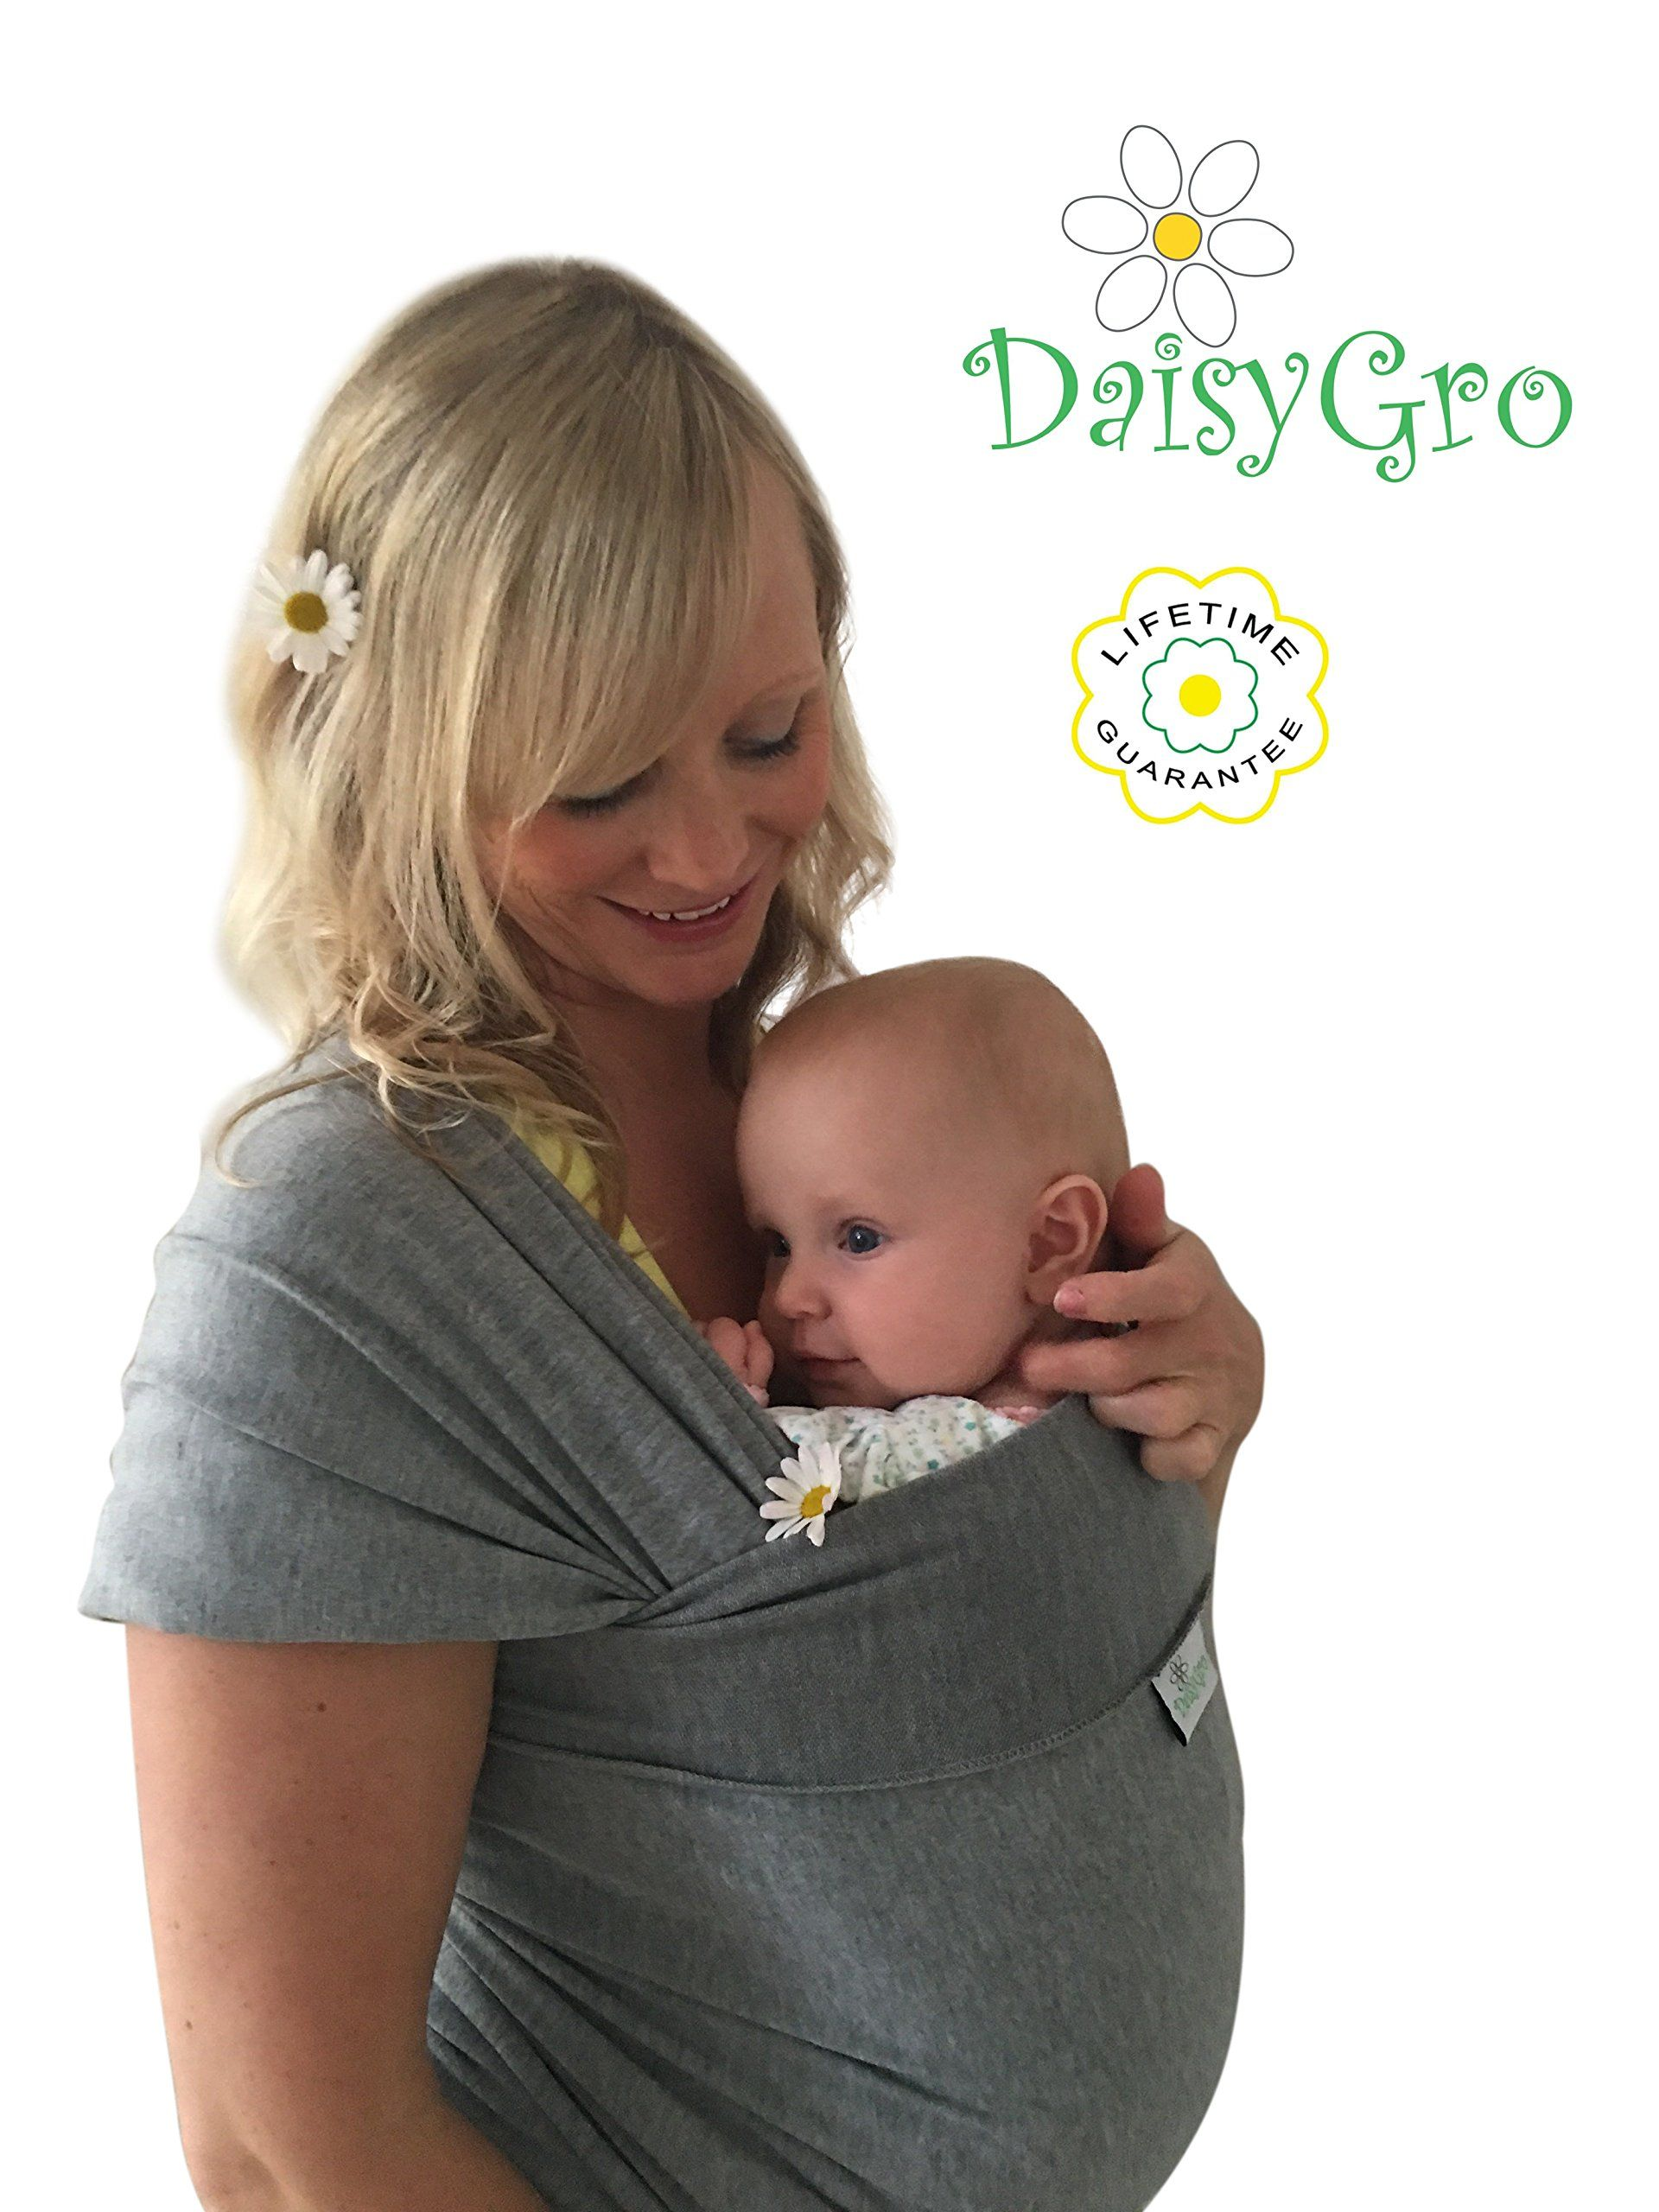 Daisygro Breathable Soft Cotton Breastfeeding Cover Baby Sling